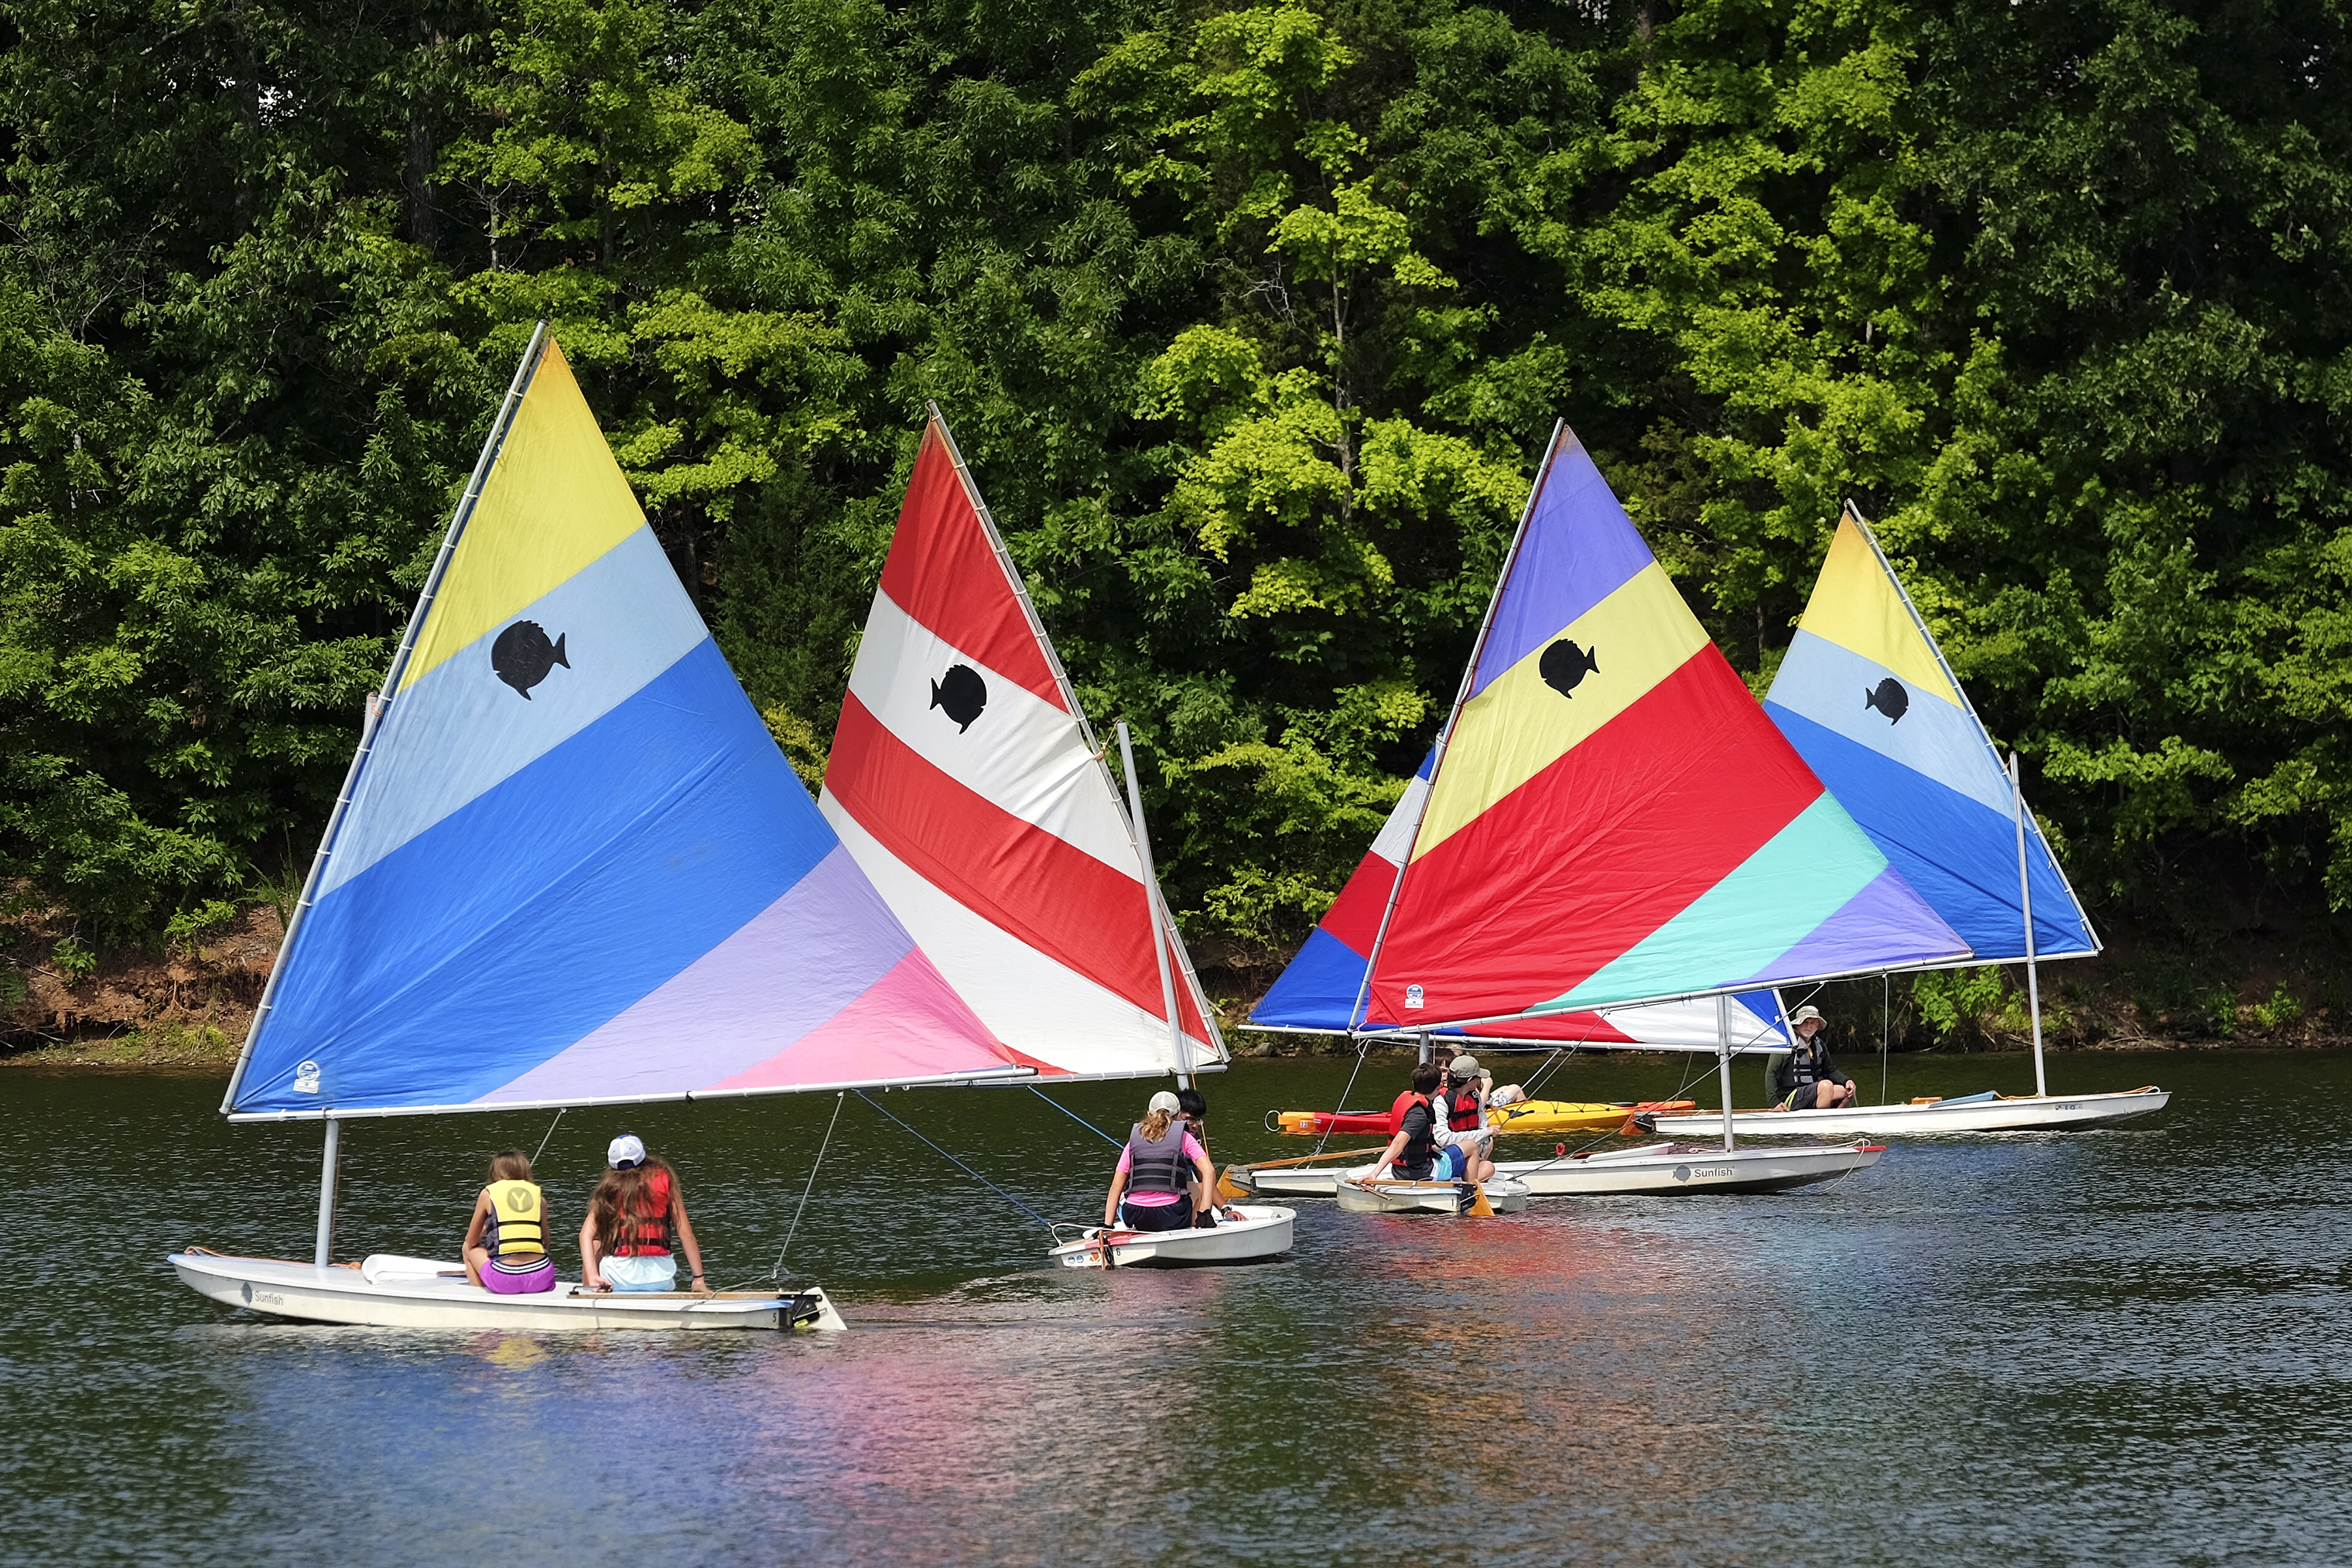 Sailboats are available for rent at Bond Park in Cary, N.C.